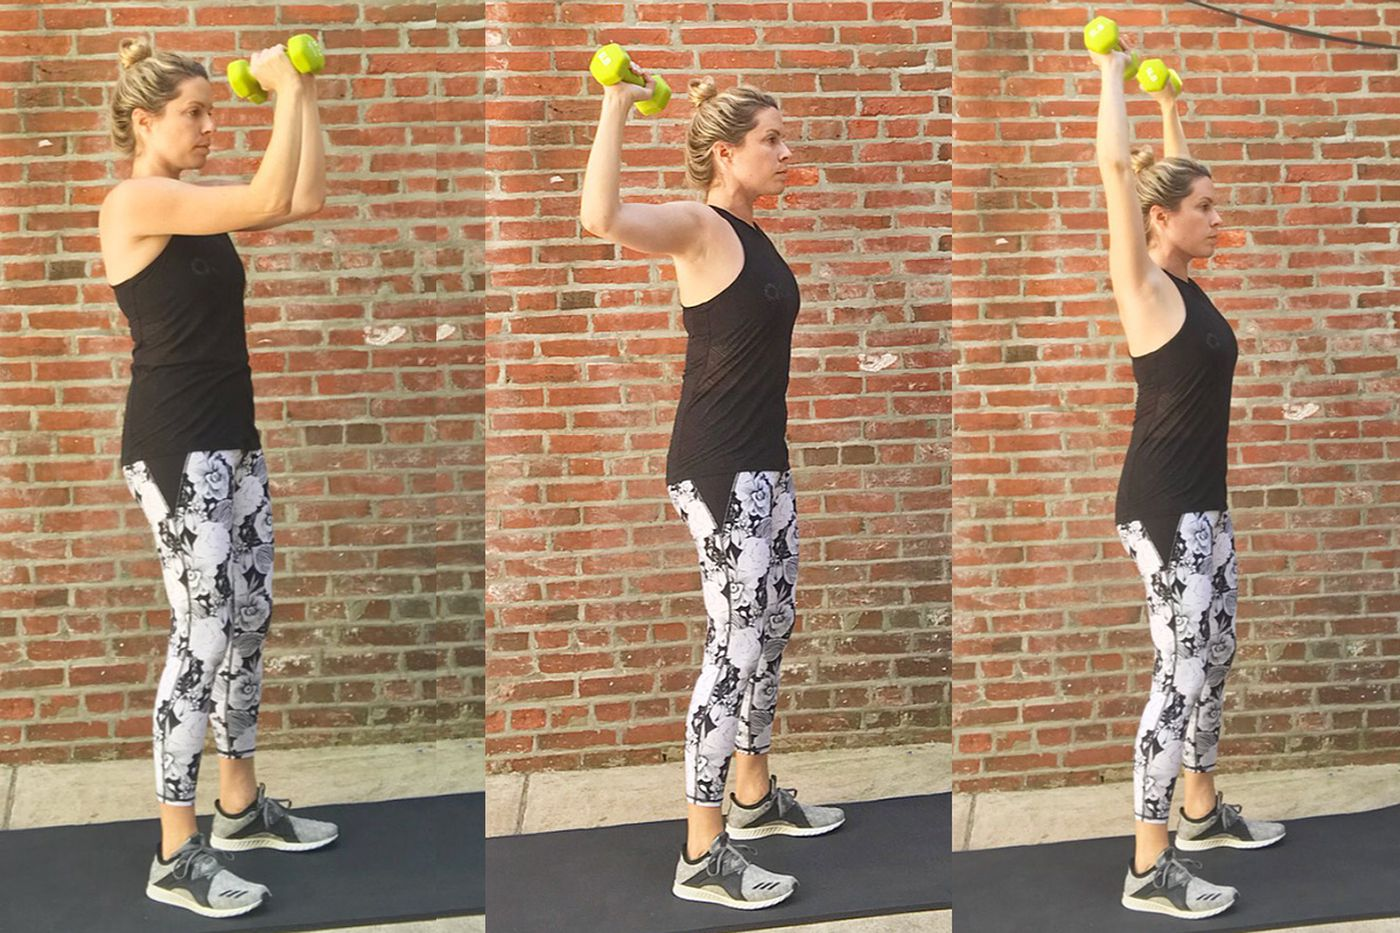 Hate push-ups? Try these 3 alternatives